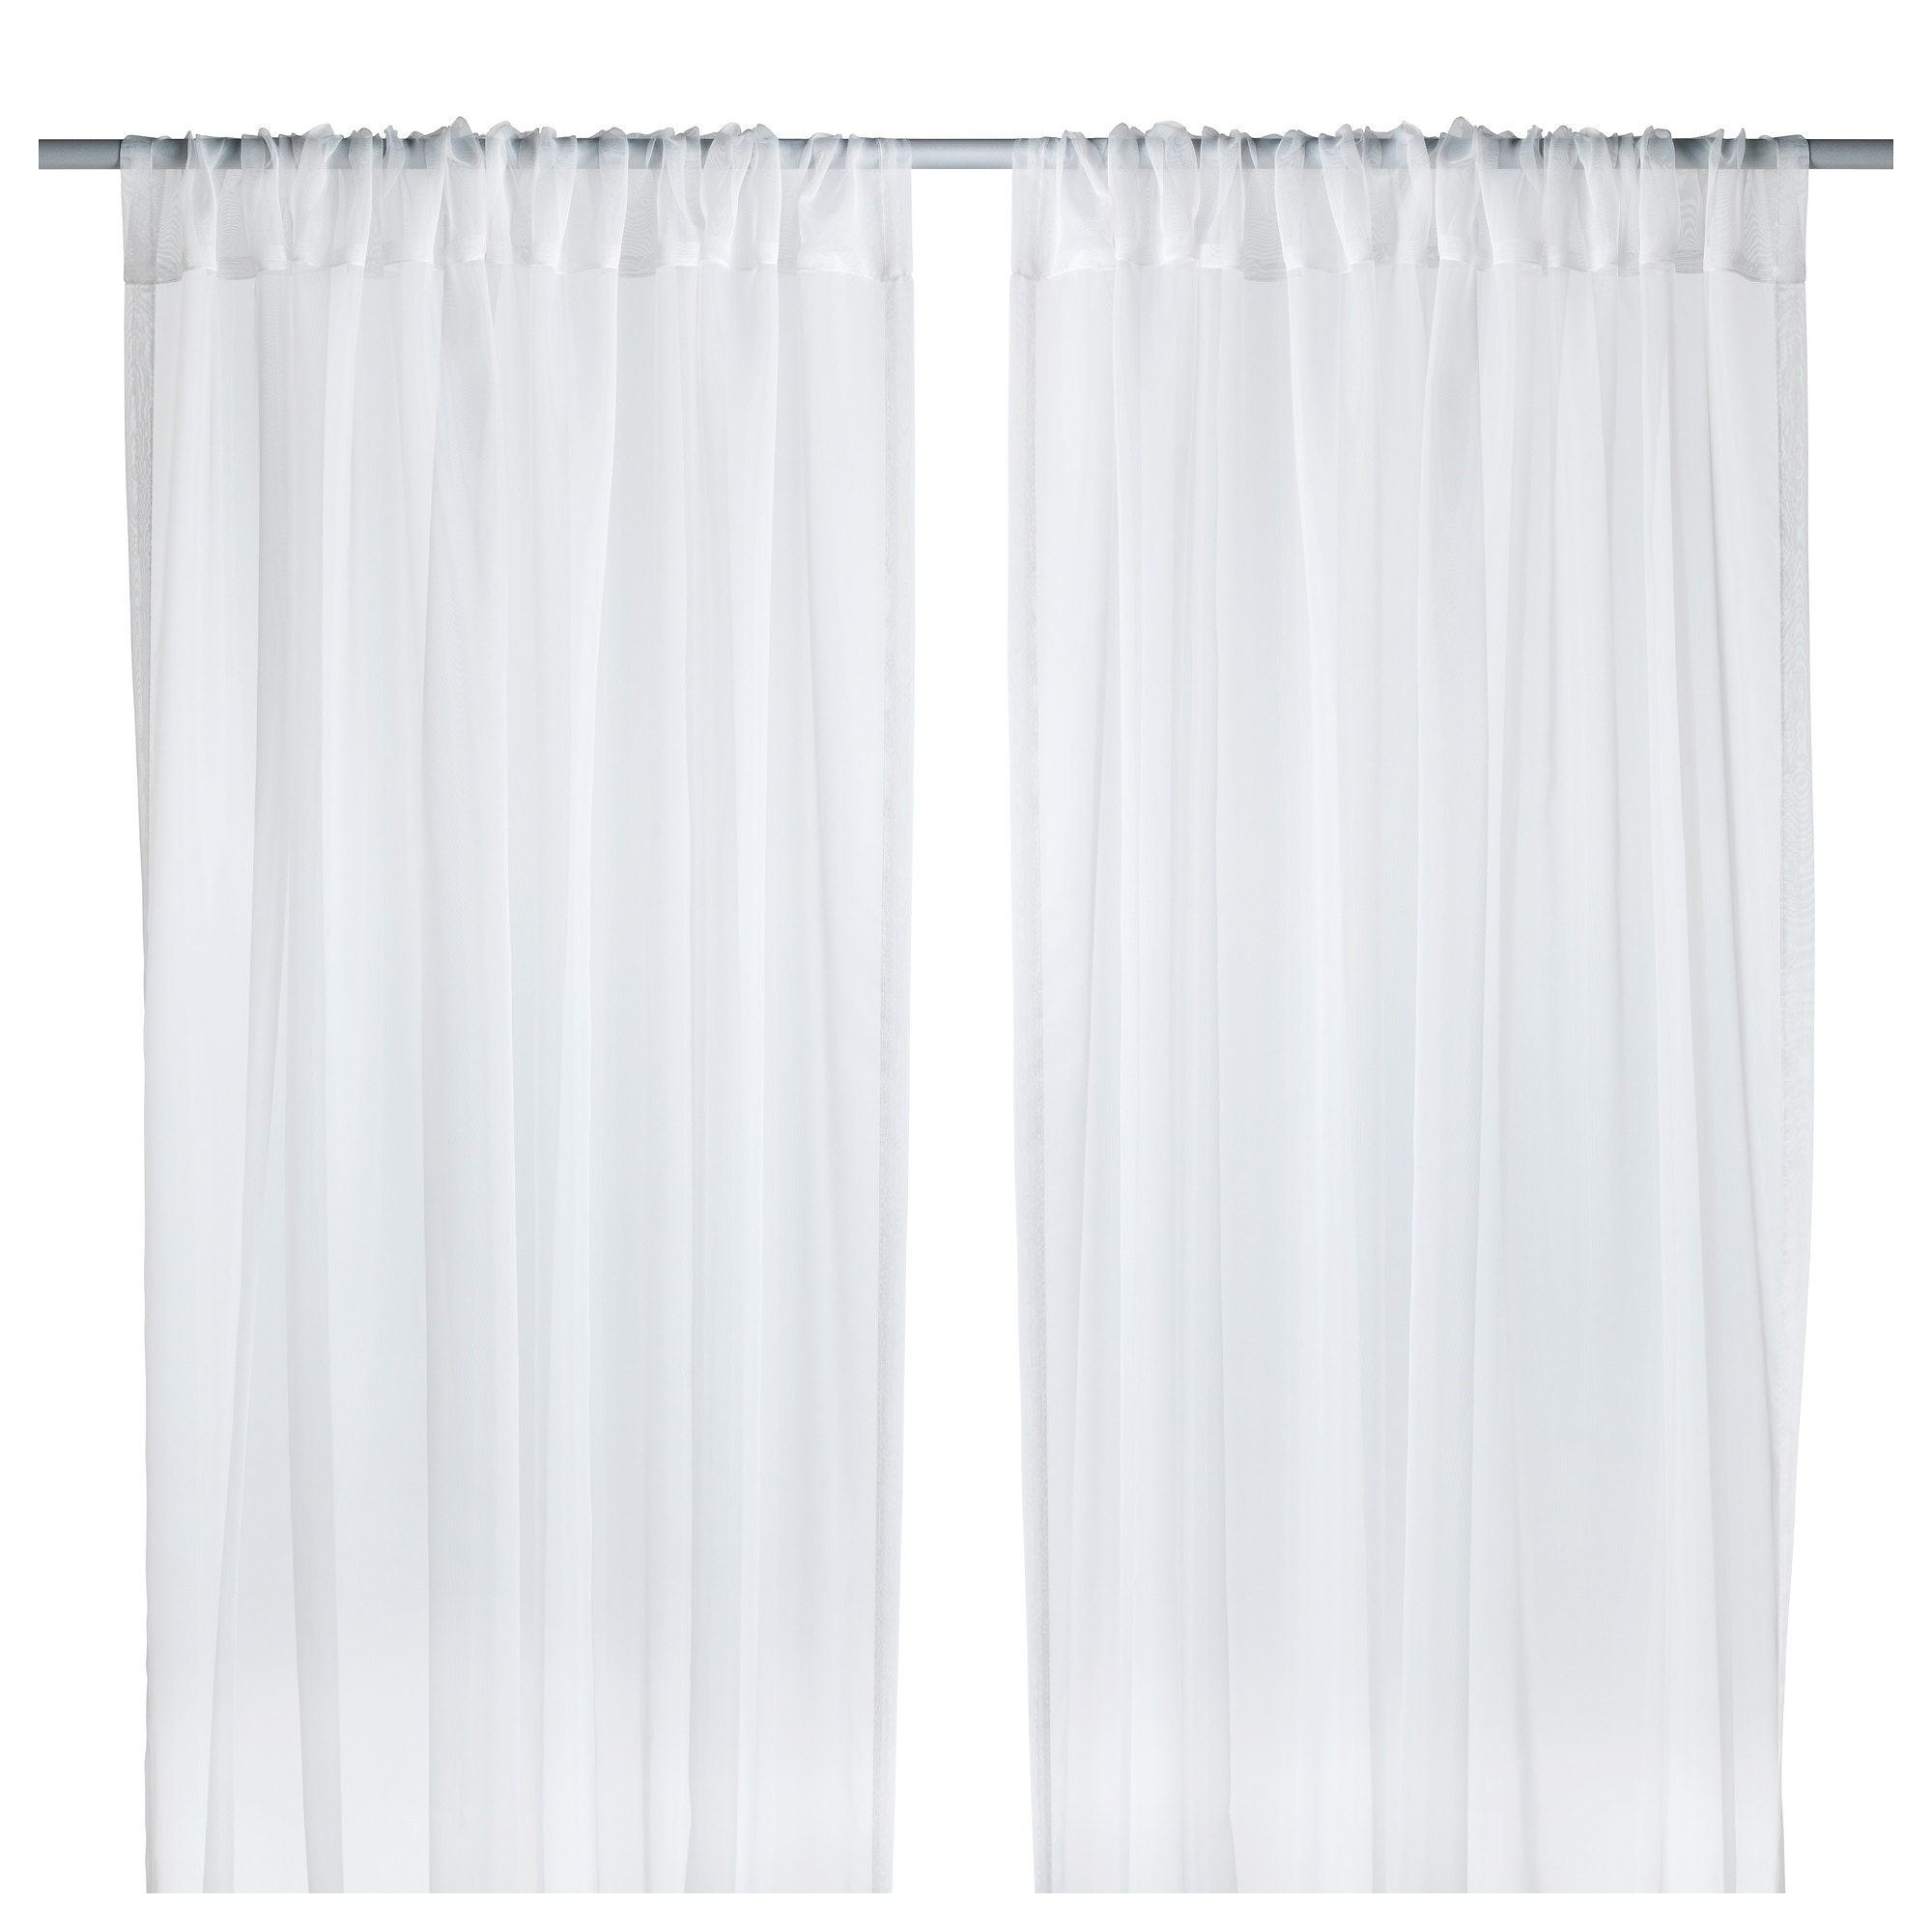 TERESIA Sheer curtains, 1 pair - IKEA